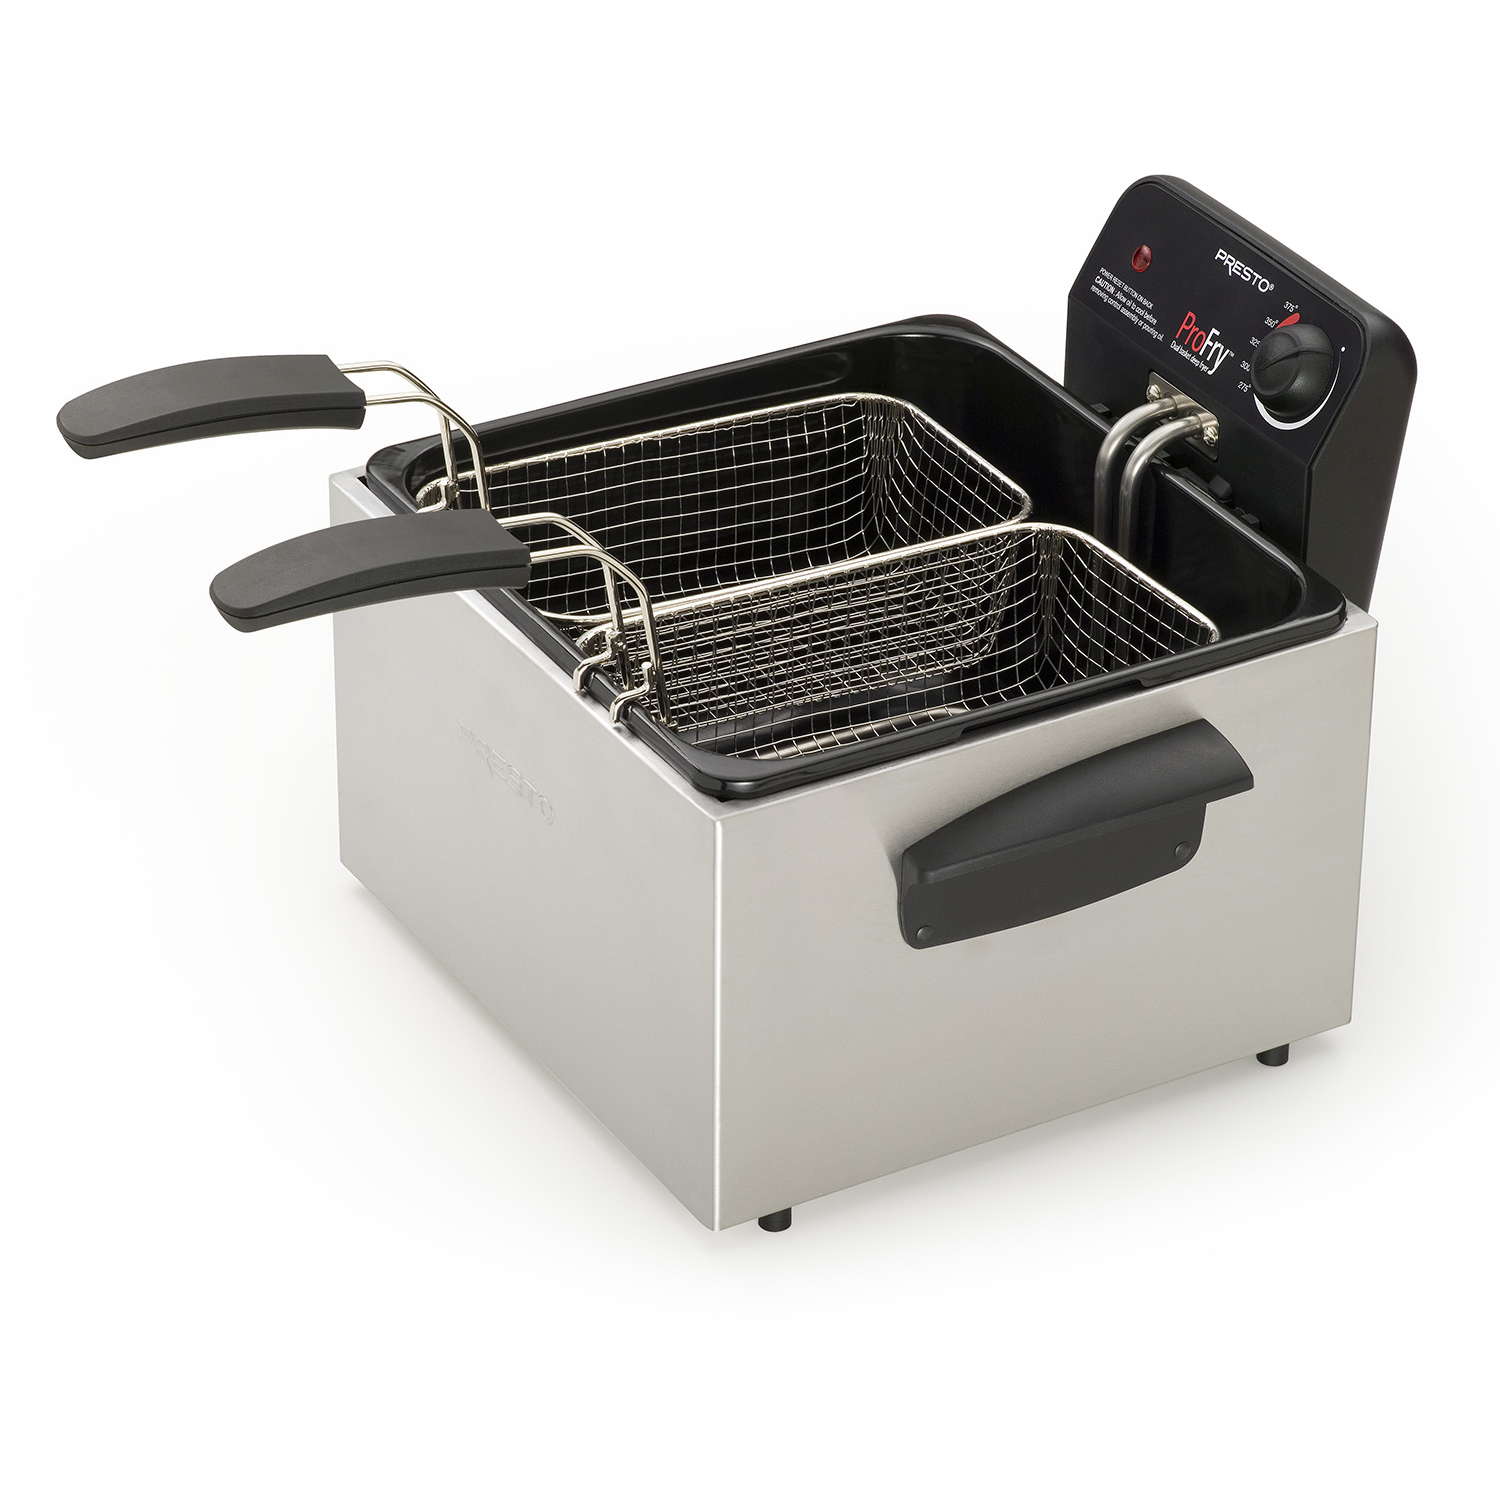 Presto 05466 Stainless Steel Dual Basket ProFry? immersion element deep fryer